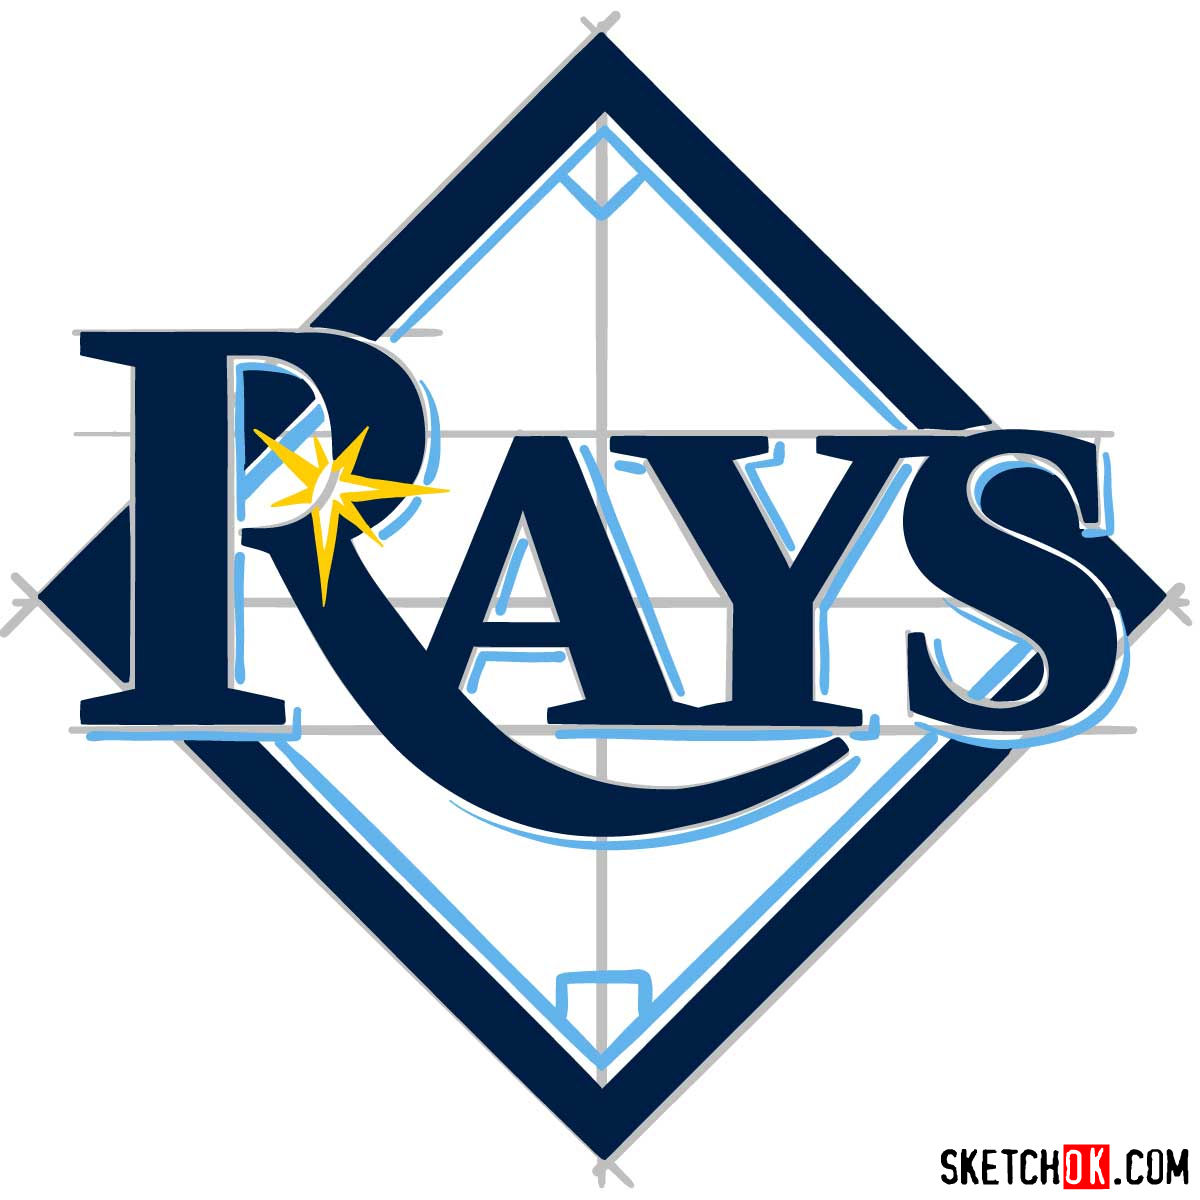 How to draw Tampa Bay Rays logo | MLB logos - step 11